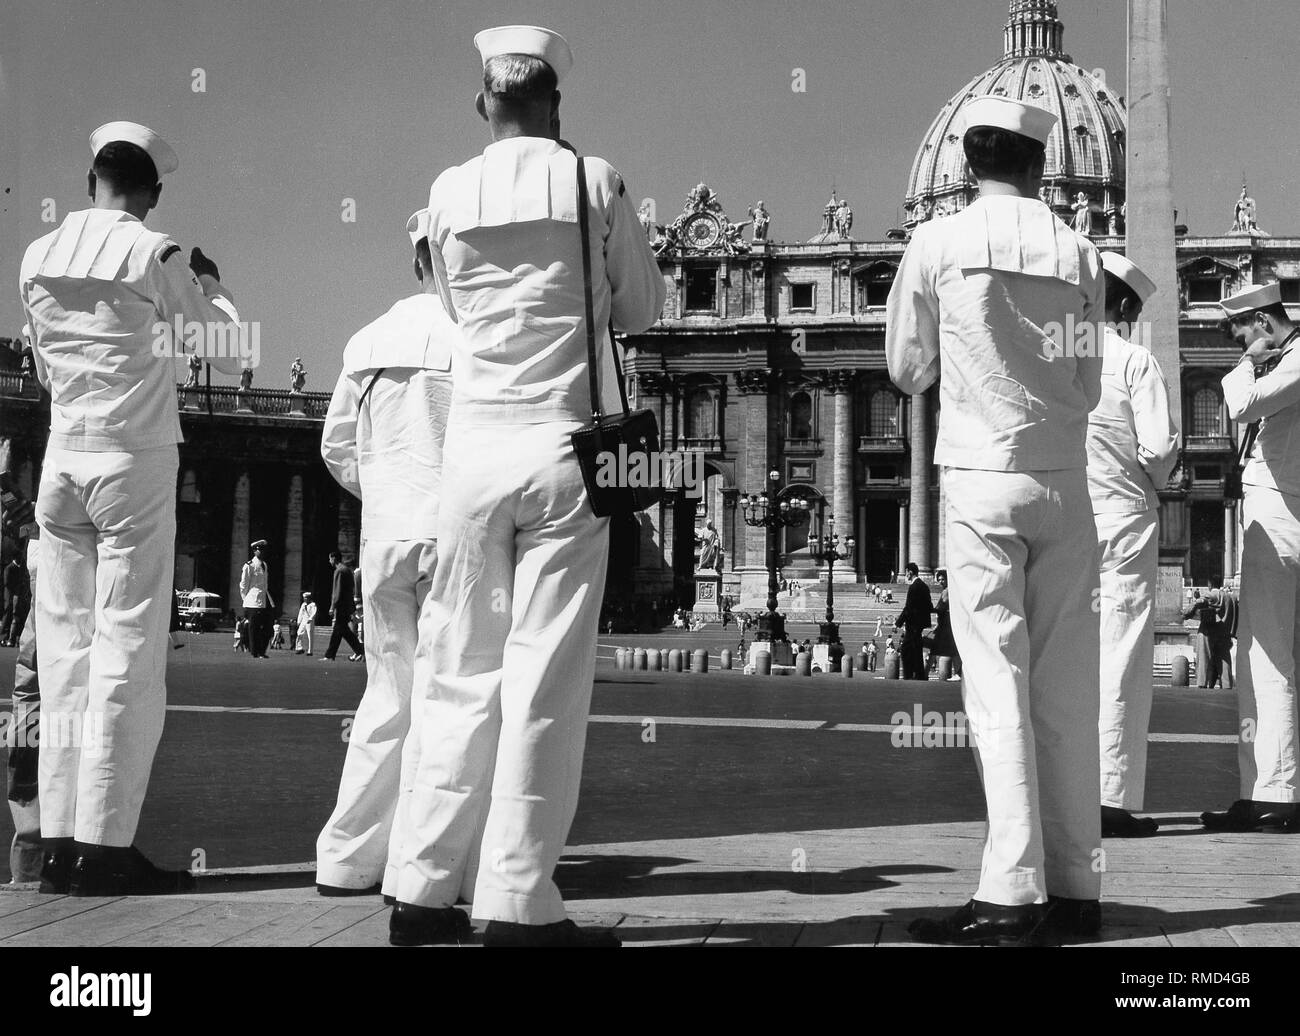 Sailors visit St. Peter's Square, which is now closed to cars. - Stock Image